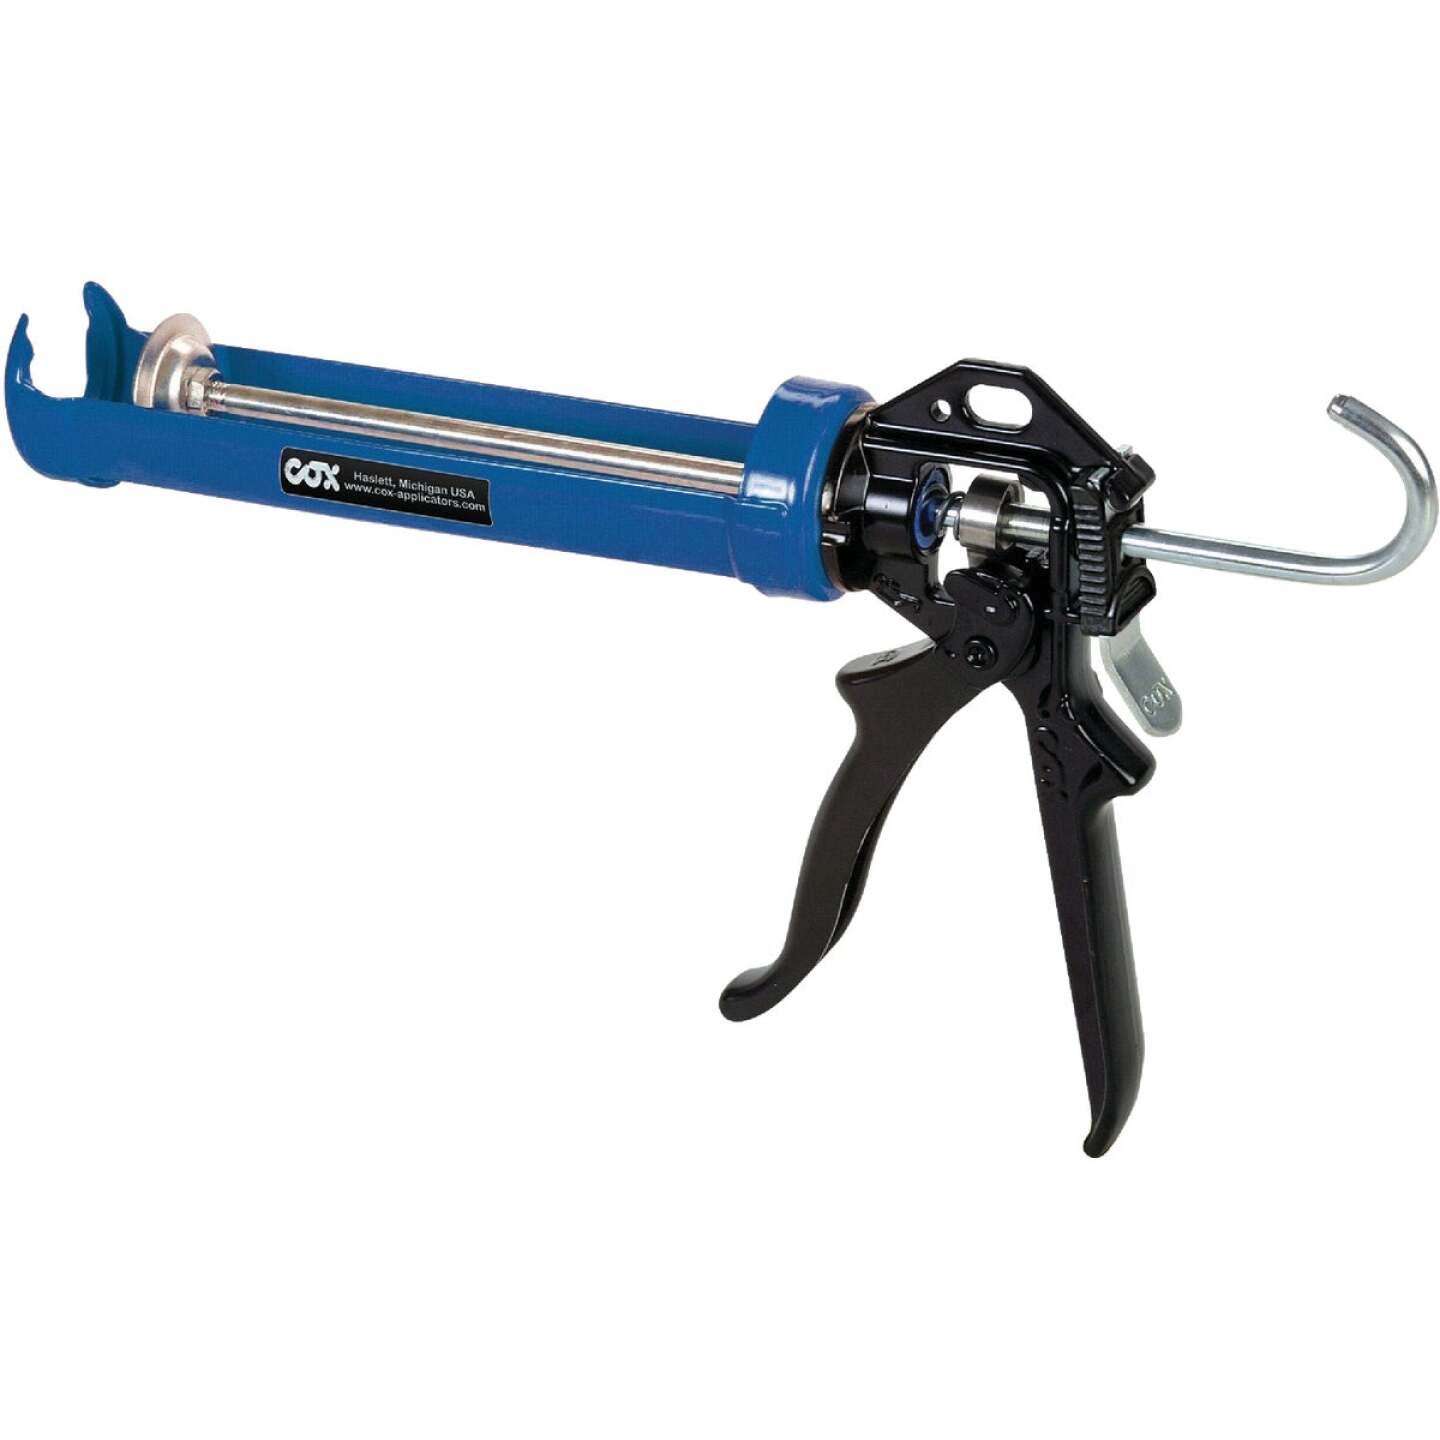 Cox PowerFlow 10 Oz. 12:1 Thrust Professional Cradle Caulk Gun Image 1